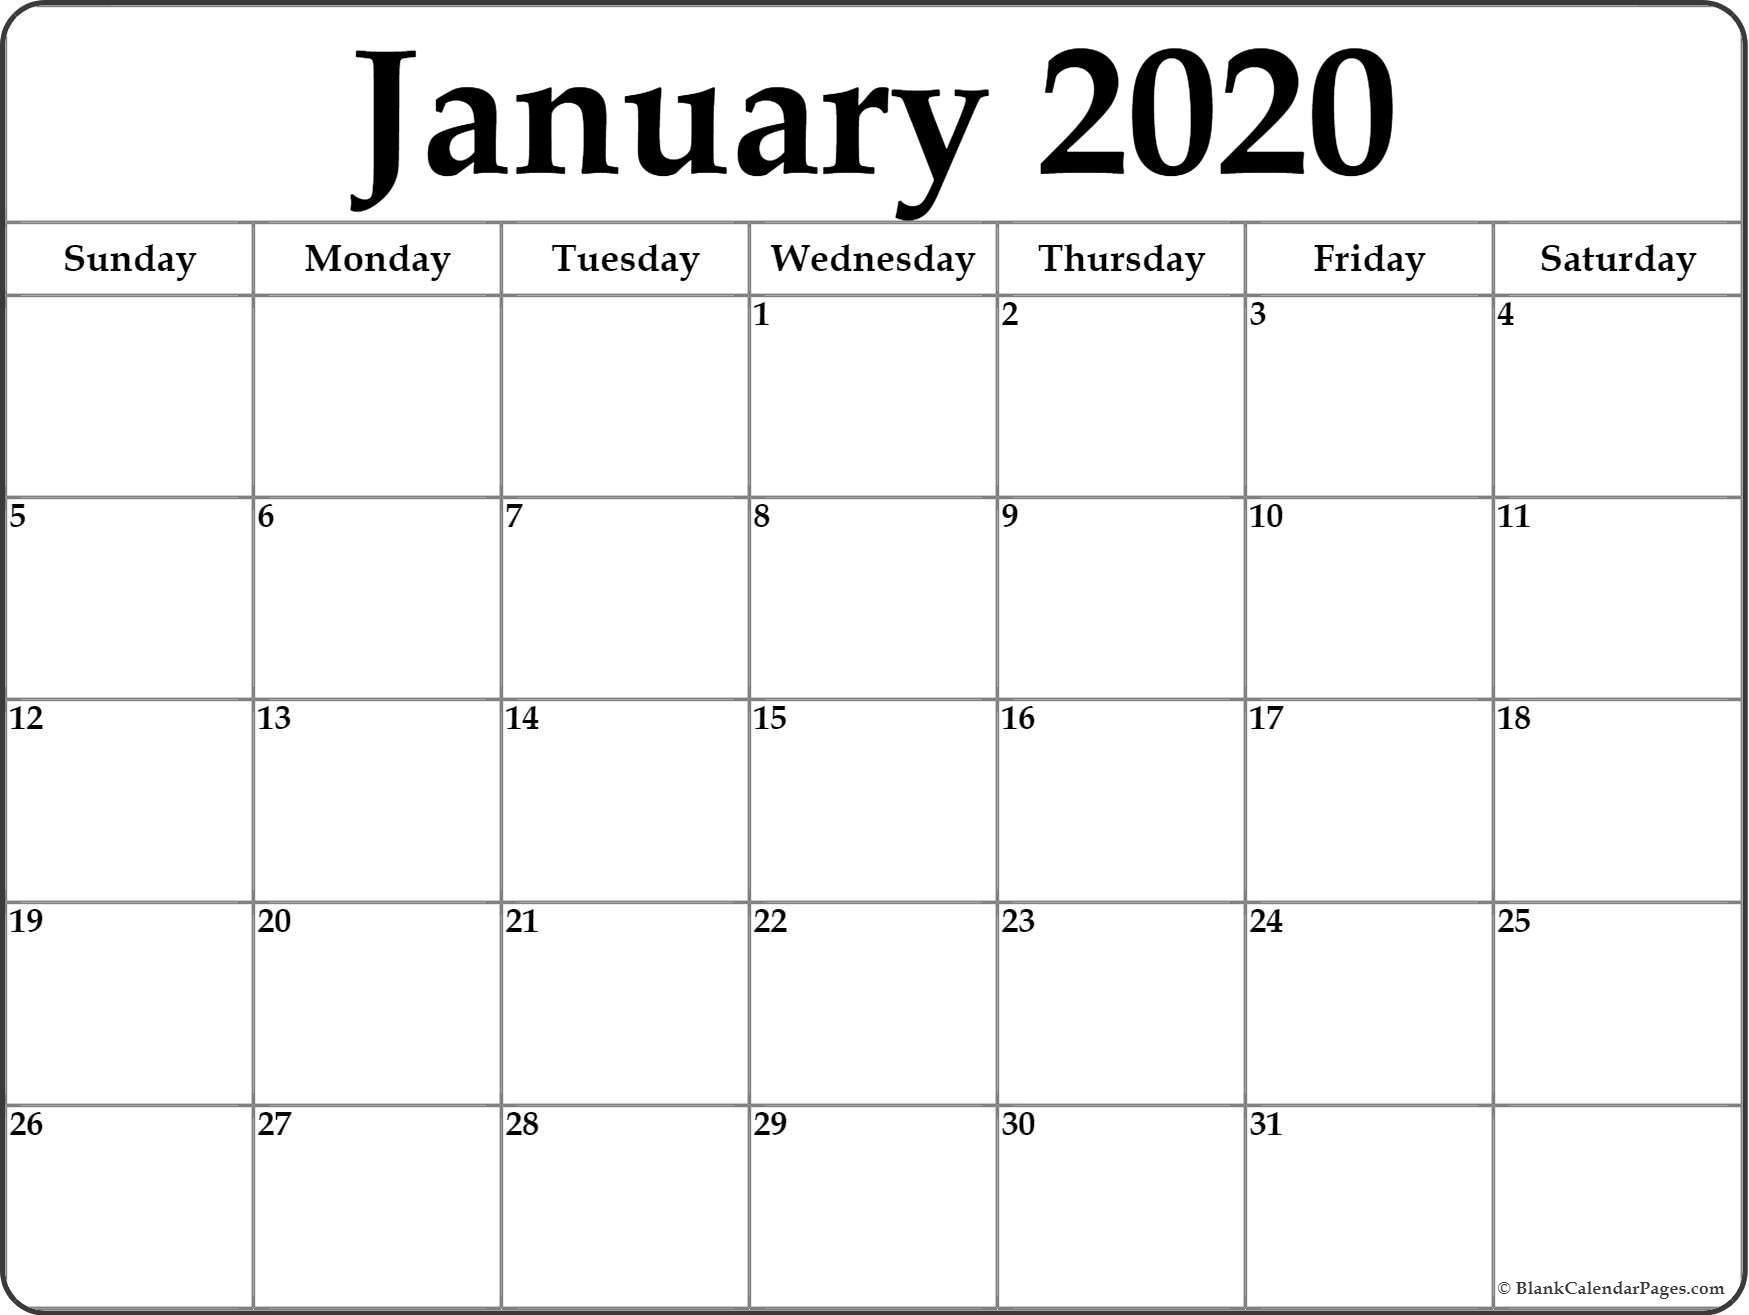 Monthly Calendars 2020 Printable Free 2-Pages Blank